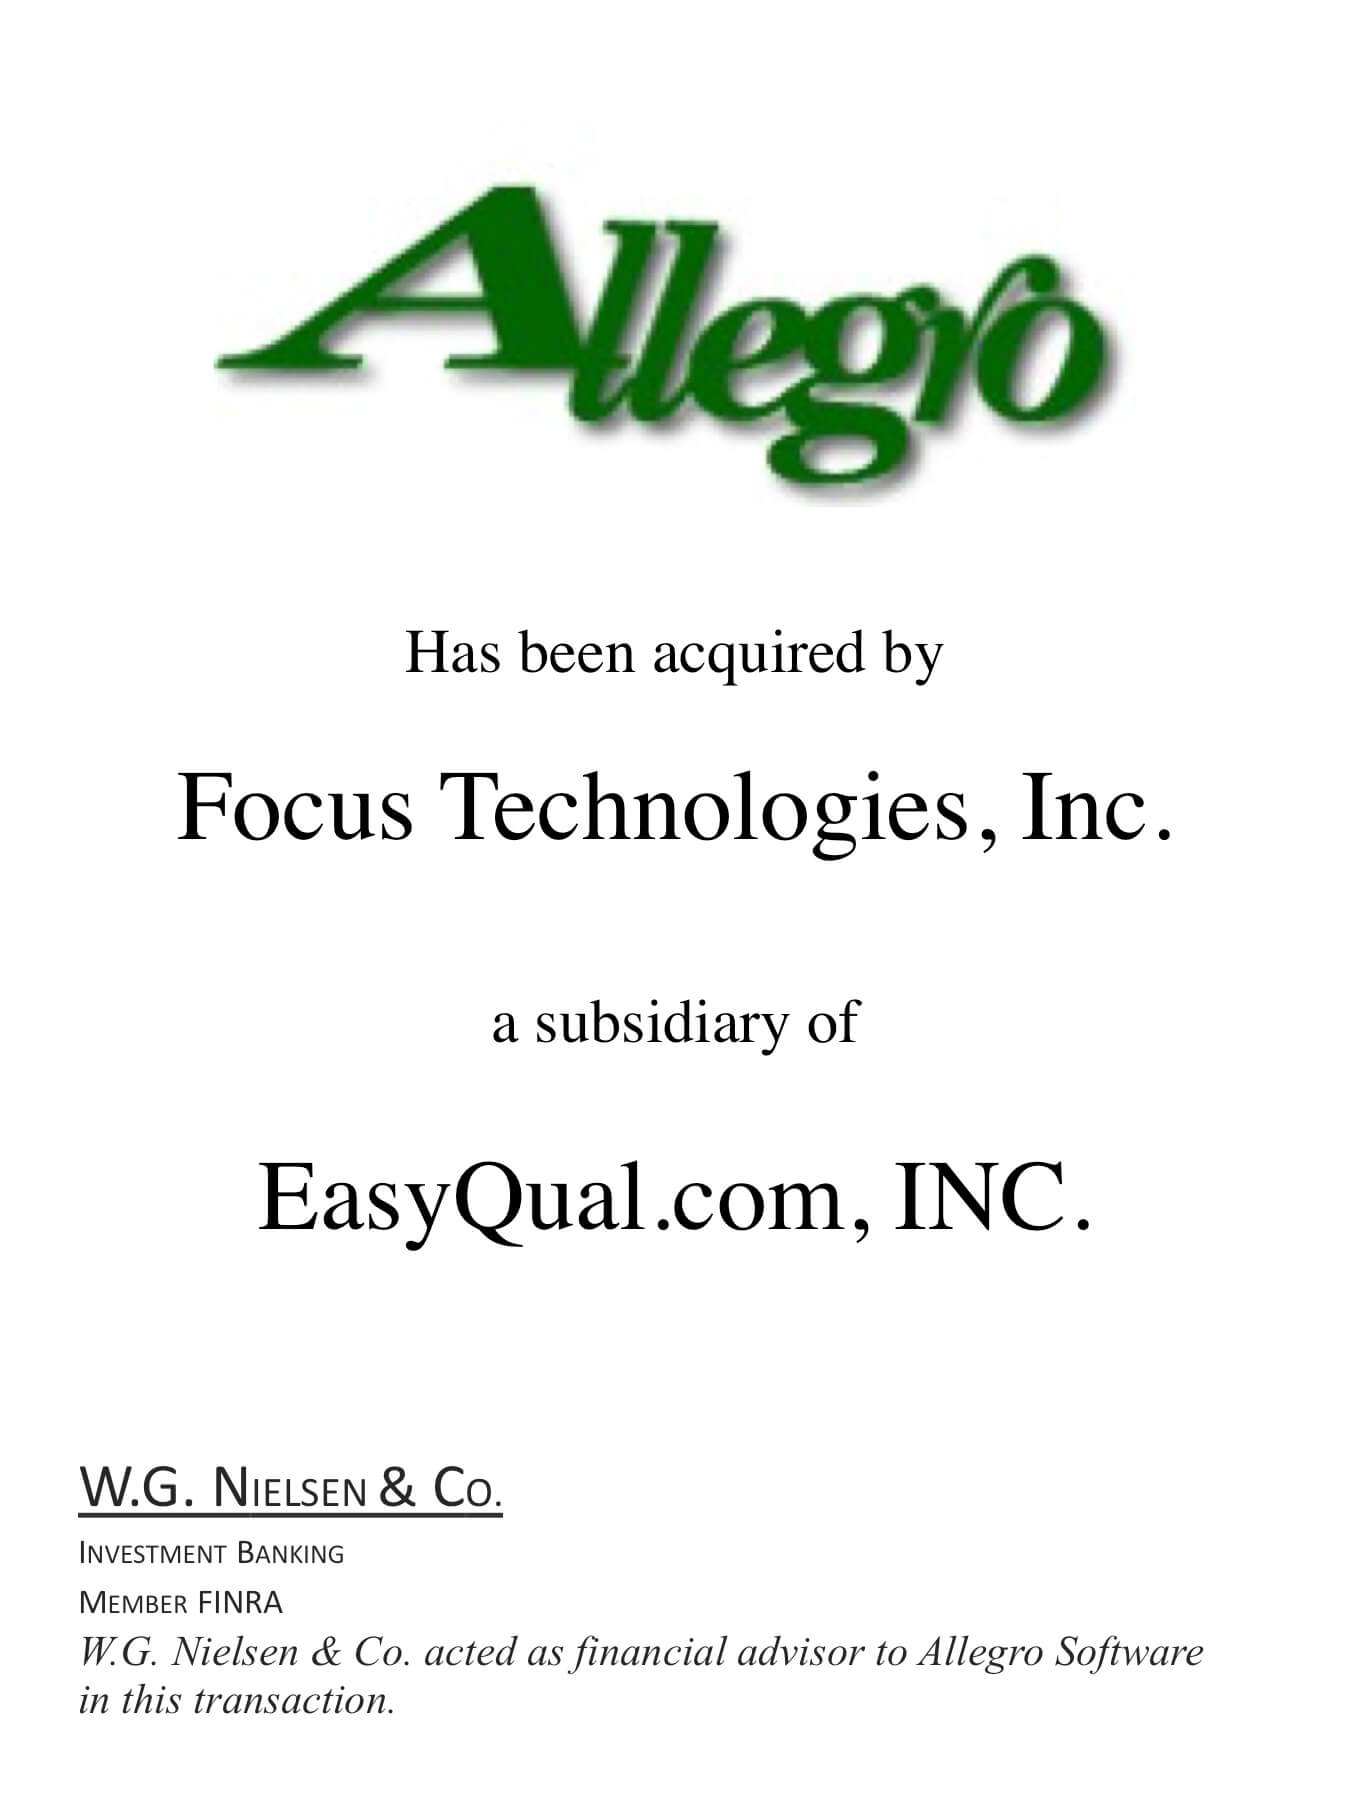 allego investment banking transaction